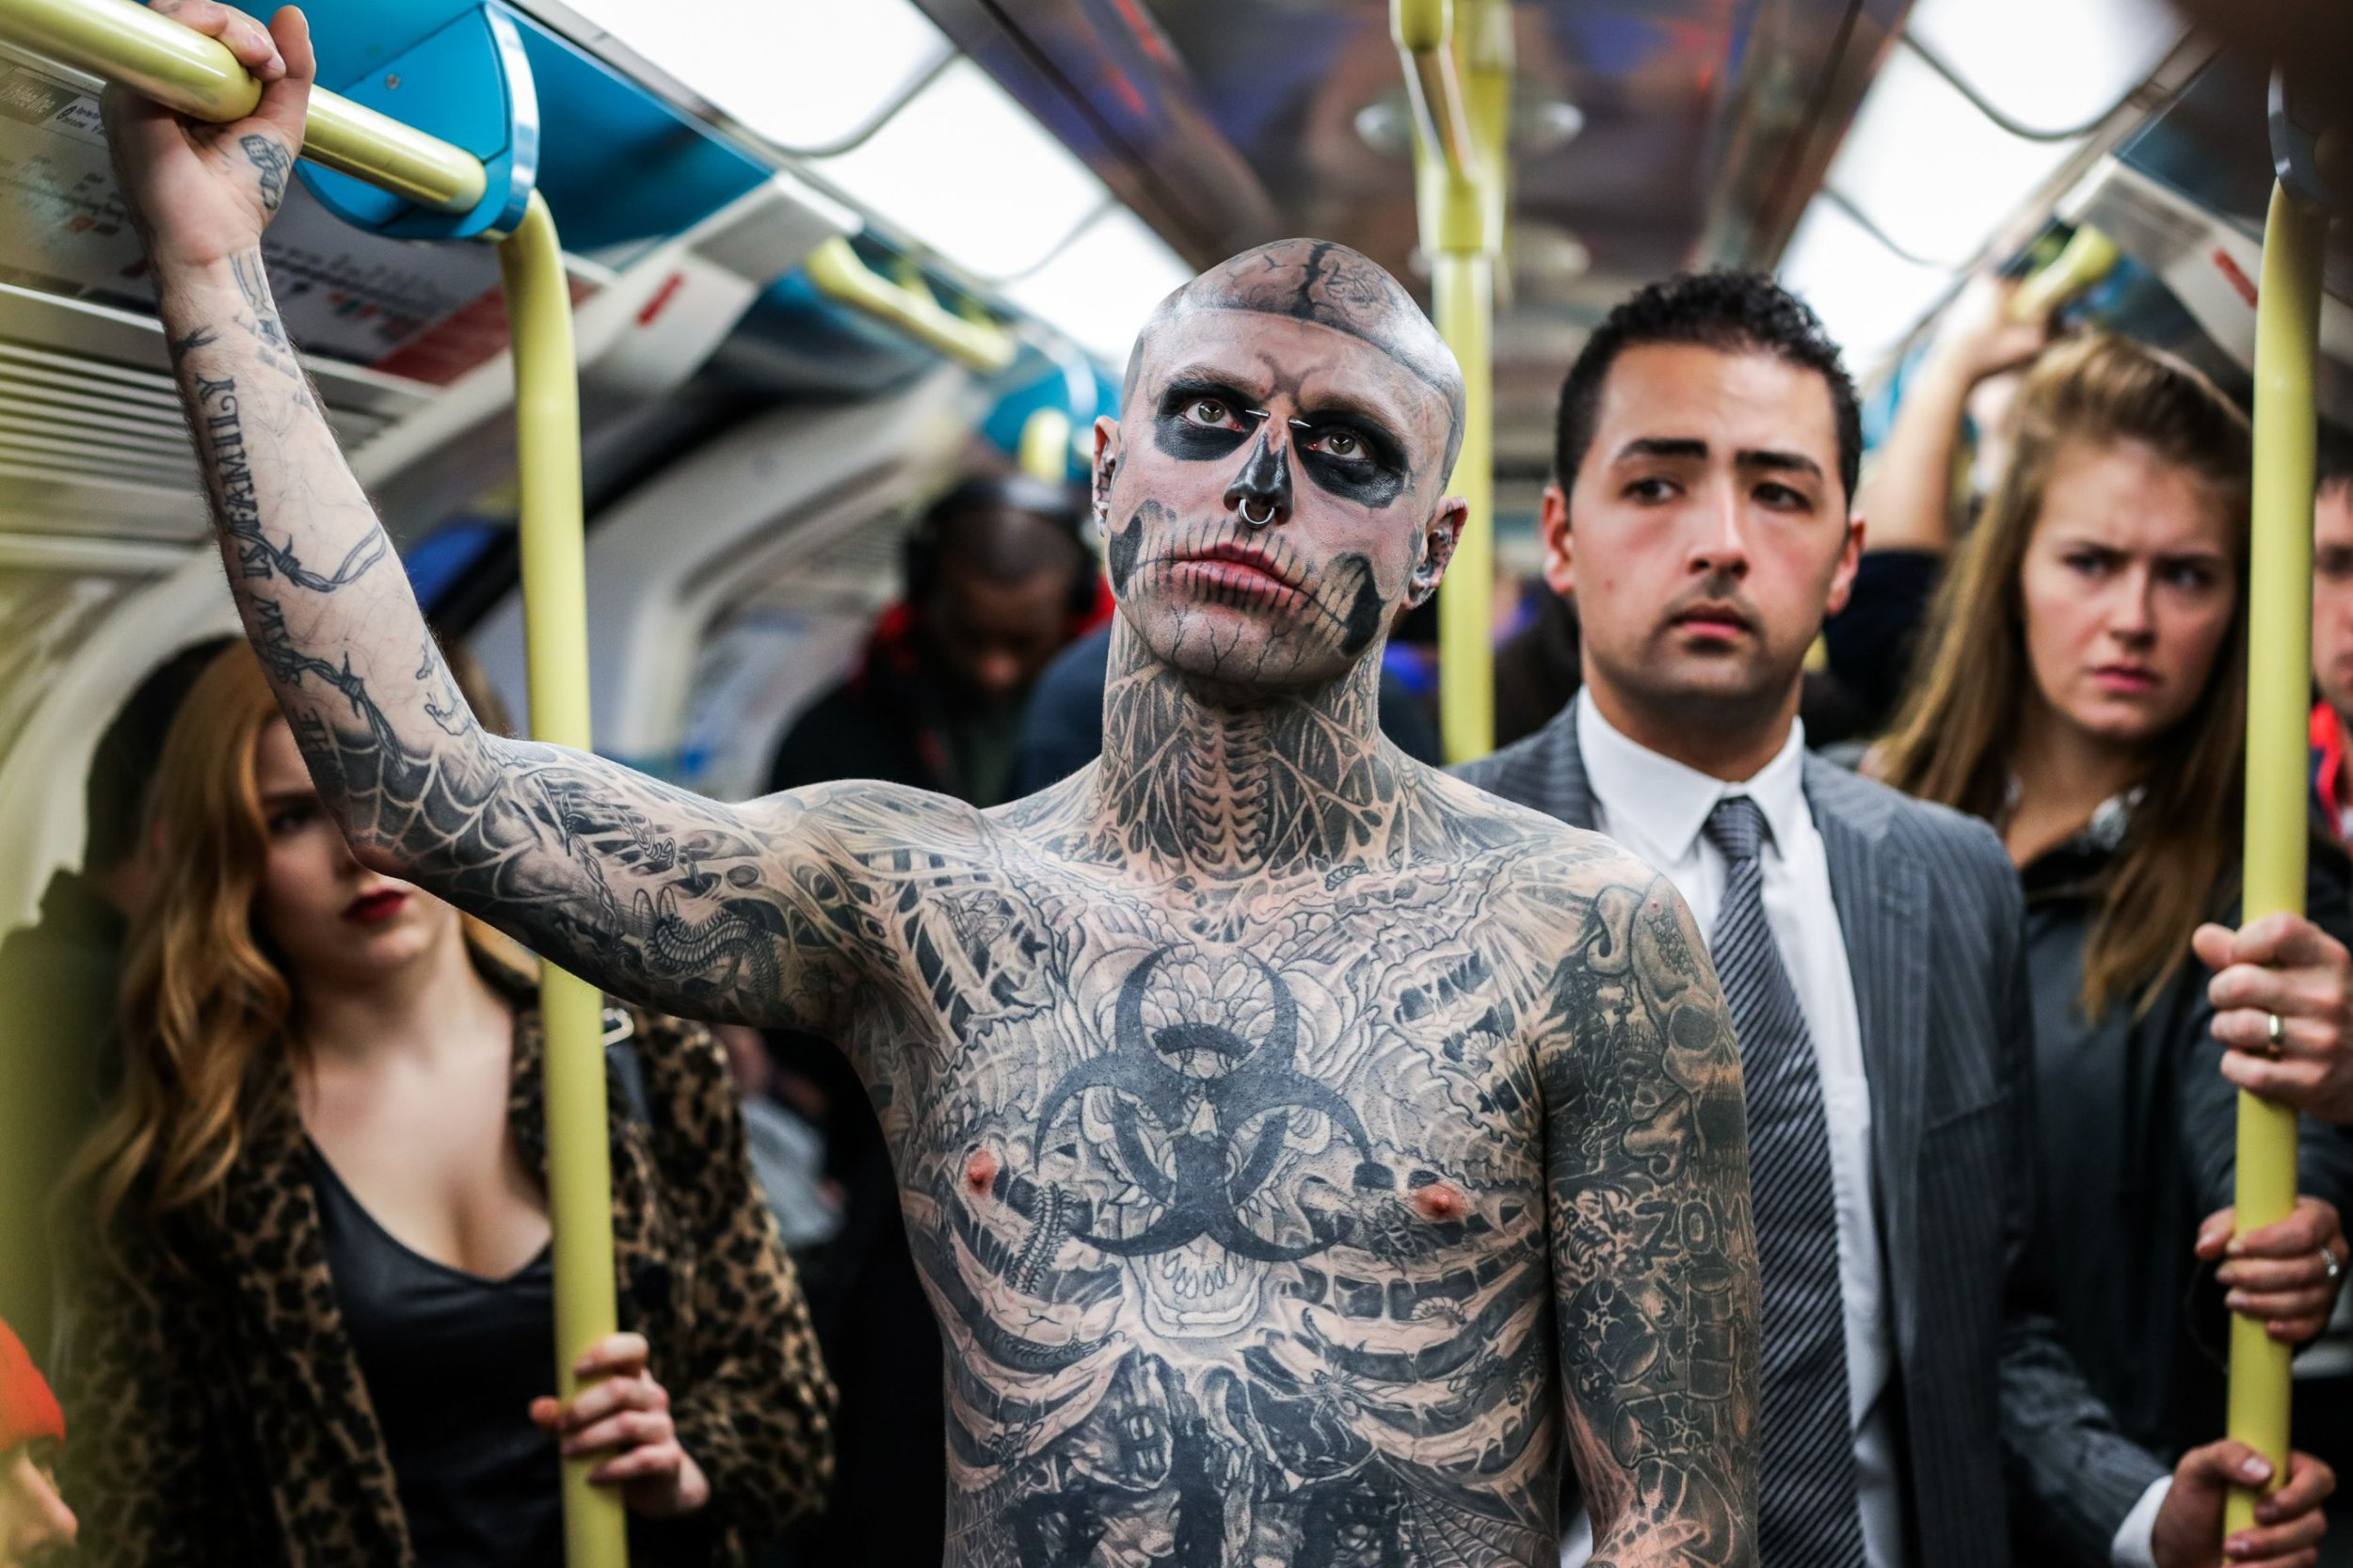 CREDIT: CPG Photography Ltd/Rex Shutterstock. Editorial use only. Not stock. Only for use in Thorpe Park story Mandatory Credit: Photo by CPG Photography Ltd/REX/Shutterstock (6078246i) Rick Genest, also known as Zombie Boy, spotted in London 'Zombie Boy' spotted in London to launch Thorpe Park's new Fright Nights scare maze, London, UK - 05 Oct 2016 FULL WORDS: http://www.rexfeatures.com/nanolink/ss56 Rick Genest, also known as ?Zombie Boy?, was spotted in London this morning to celebrate the launch of ?Platform 15? - Thorpe Park?s new Fright Nights scare maze, marking the 15th anniversary of the nation?s premiere Halloween event, returning on October 7th 2016. Zombie Boy, who has 90% of his body is covered in tattoos, holds a Guinness World Record for the most bones inked on a human body (138) and is famed for his work with Lady Gaga. Platform 15 is Thorpe Park?s biggest maze to date covering 450 metres of woodland and containing over 30 zombie actors.